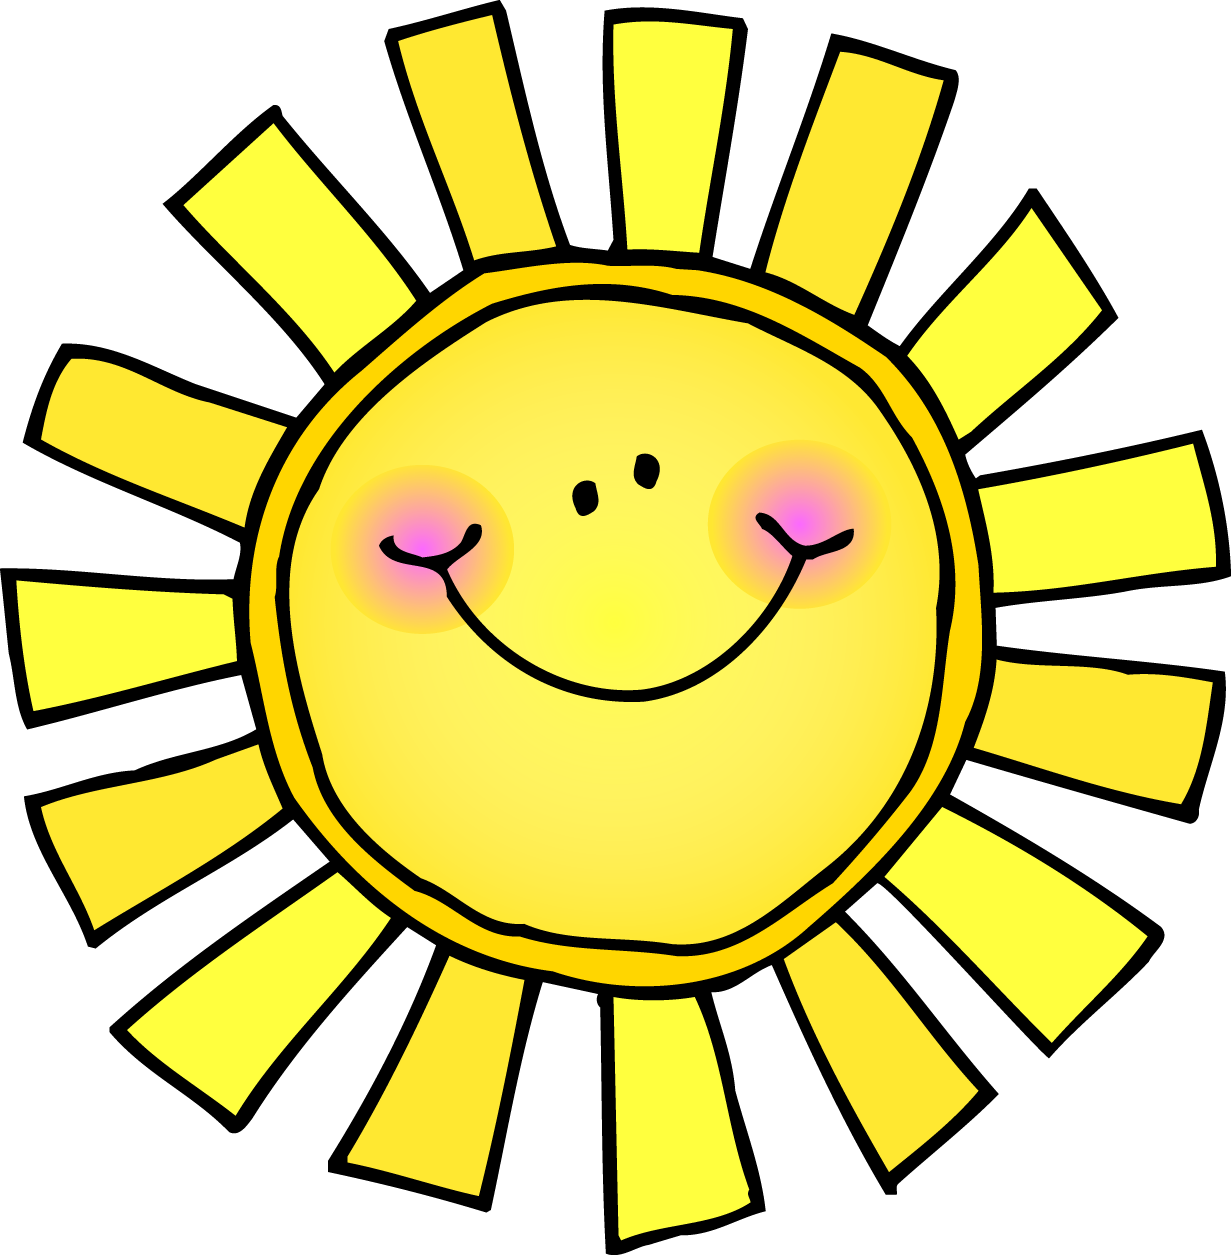 Noon sun clipart clipart freeuse download 28+ Collection of Sun Drawing Clipart | High quality, free cliparts ... clipart freeuse download